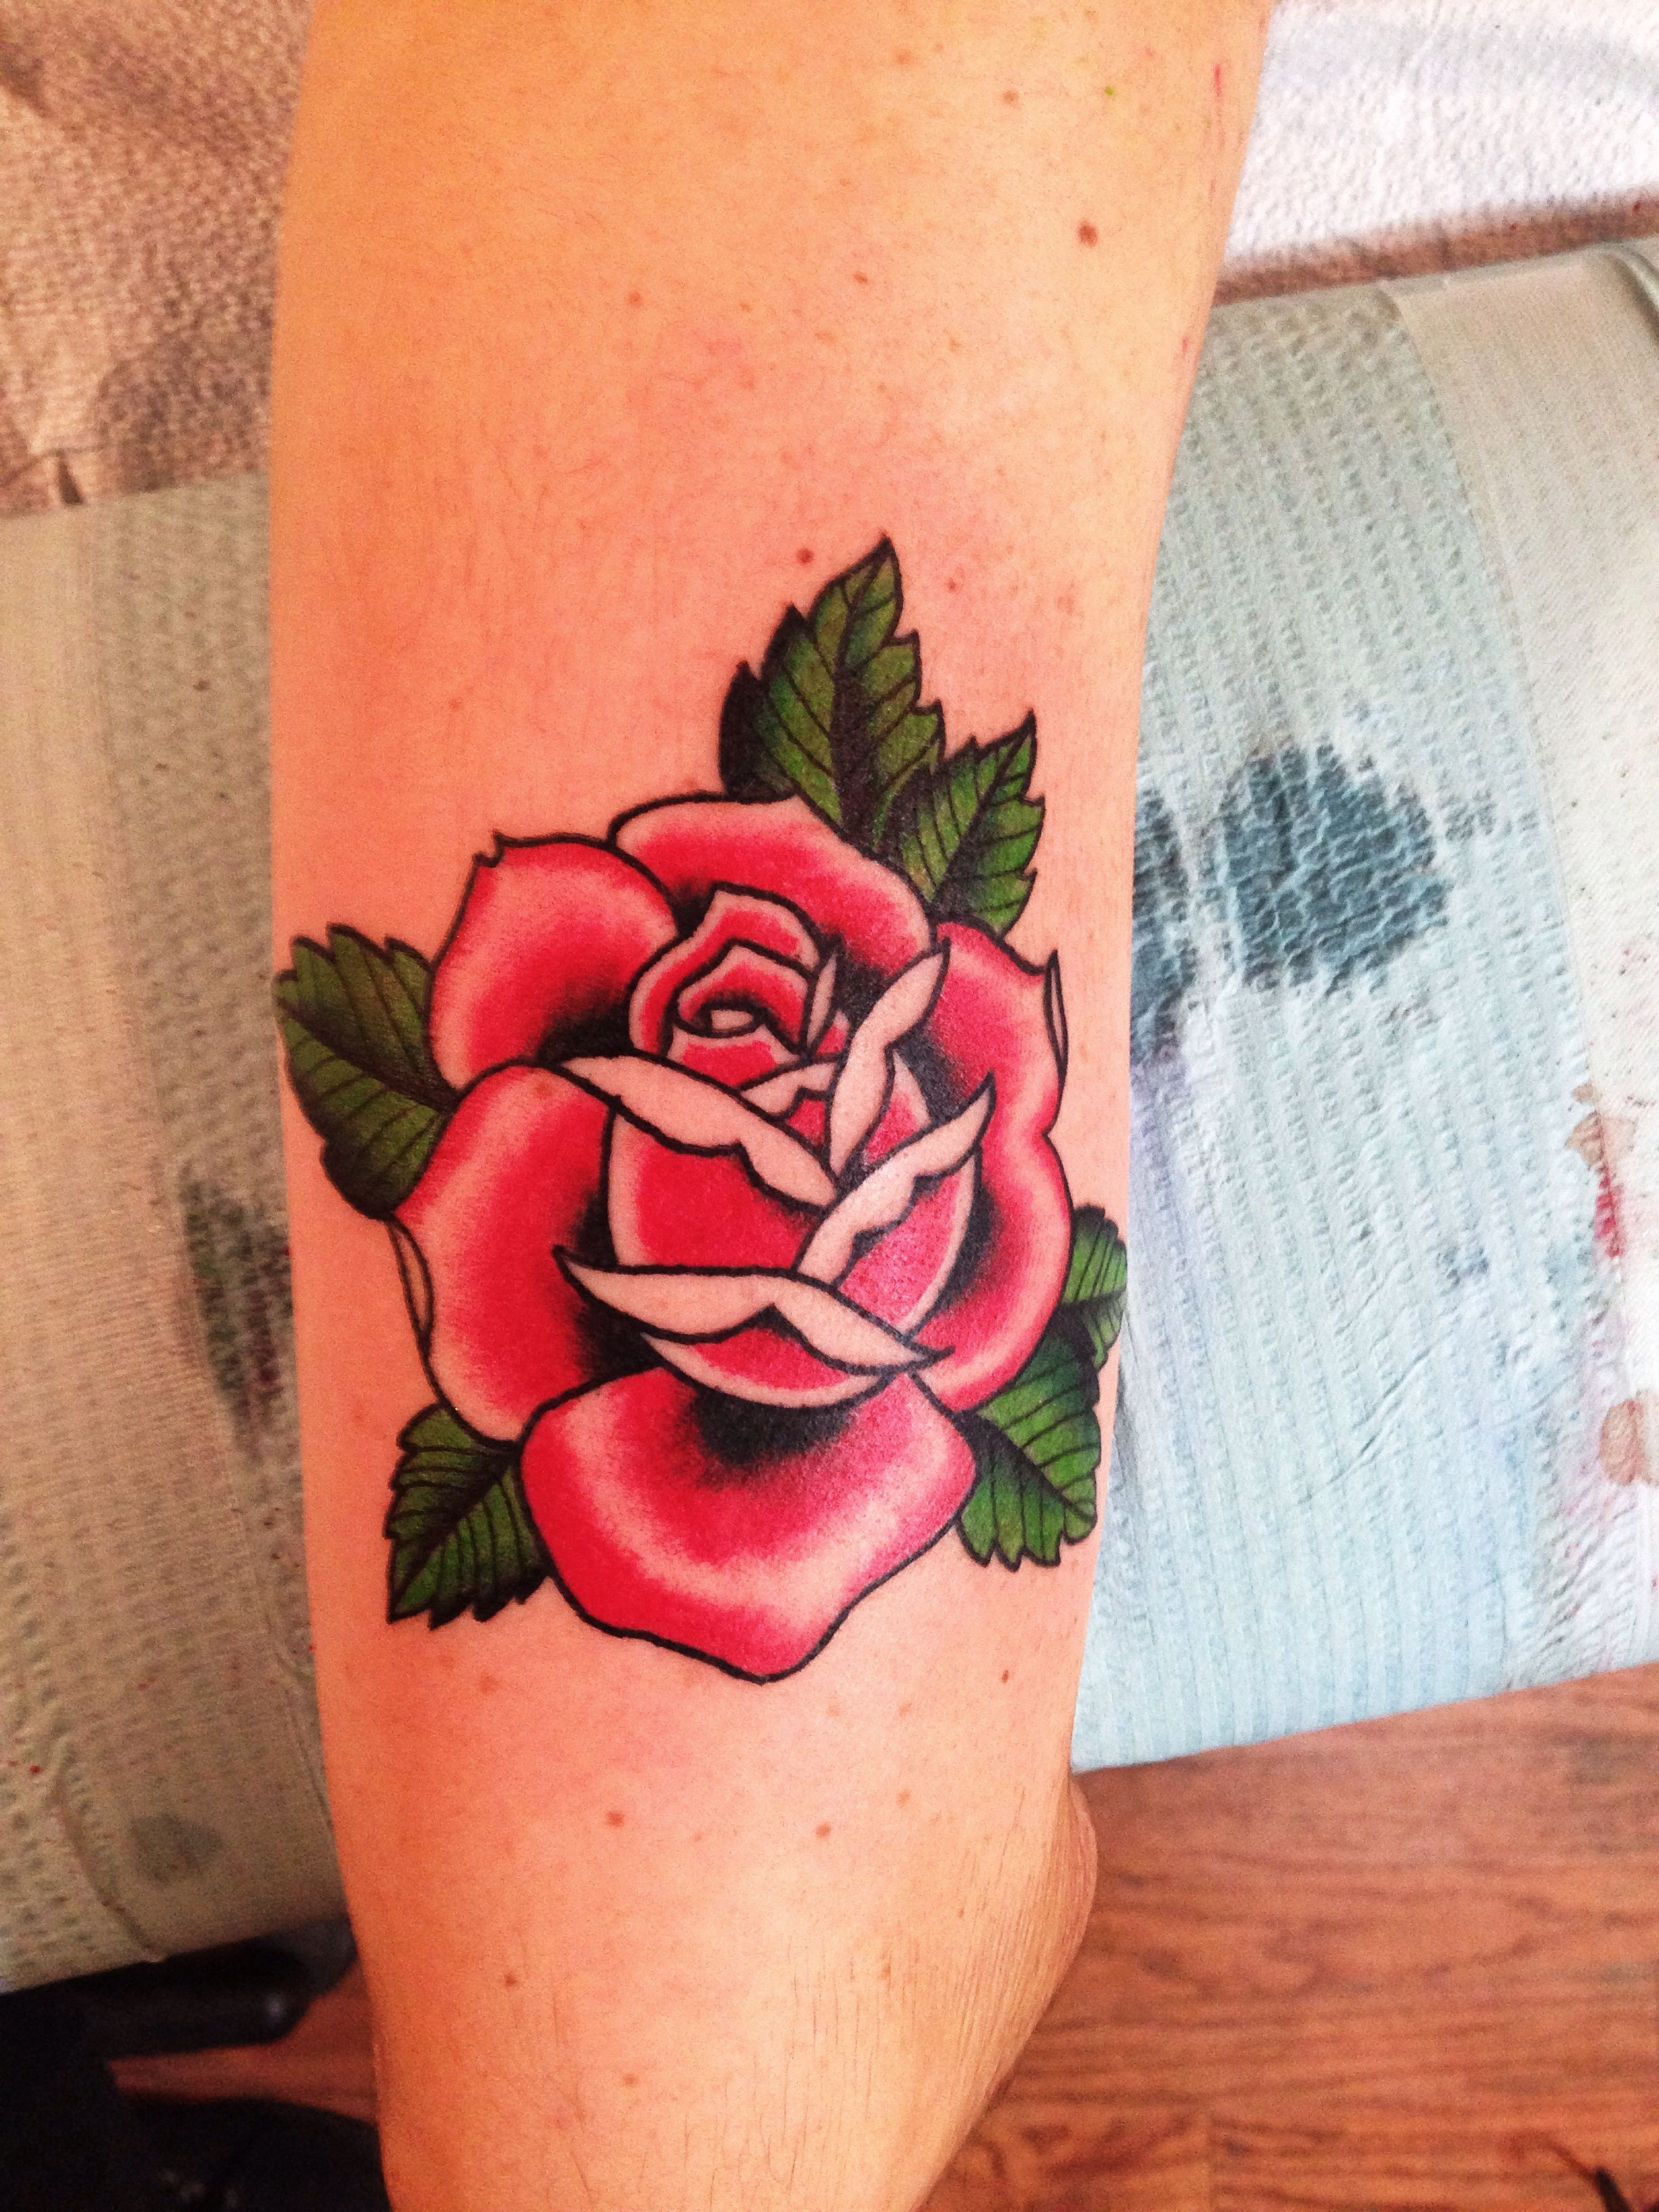 Rose tattoo on Keely while covering a shift  Mike Attack  New York, NY For appointments/inquires E-mail Mikeattacktattoo@gmail.com Instagram @Mikeattack_tattoo